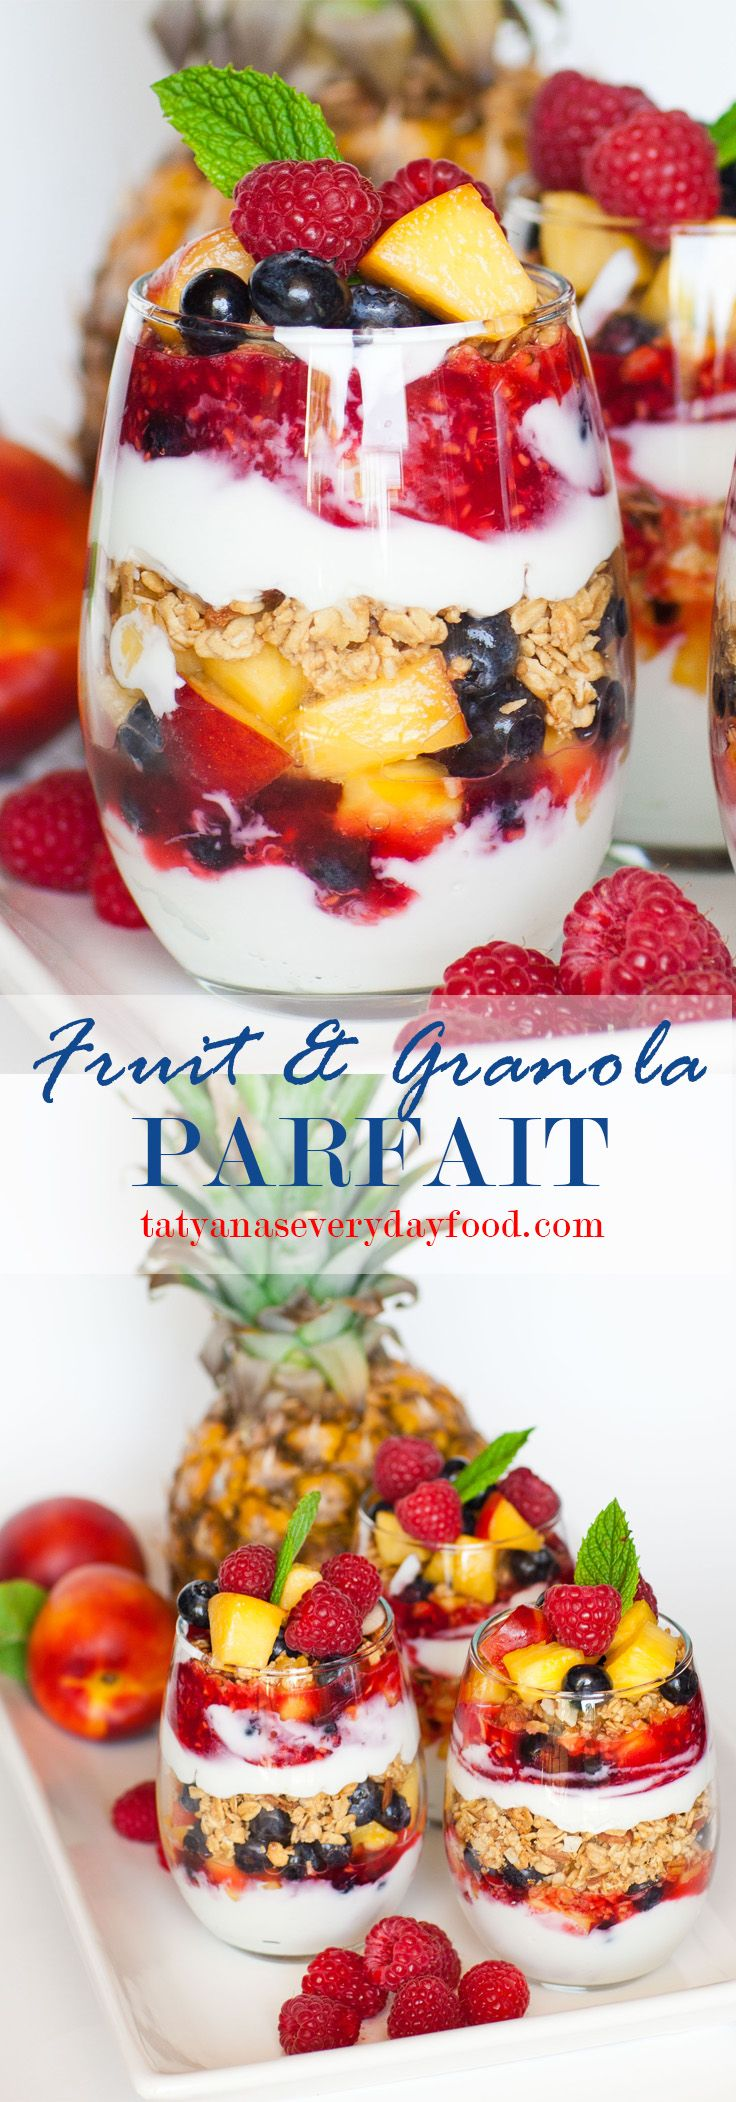 Fruit and Granola Parfait with video recipe - made with Greek yogurt, raspberry sauce, fresh fruit and crunchy granola! Tatyanas Everyday Food